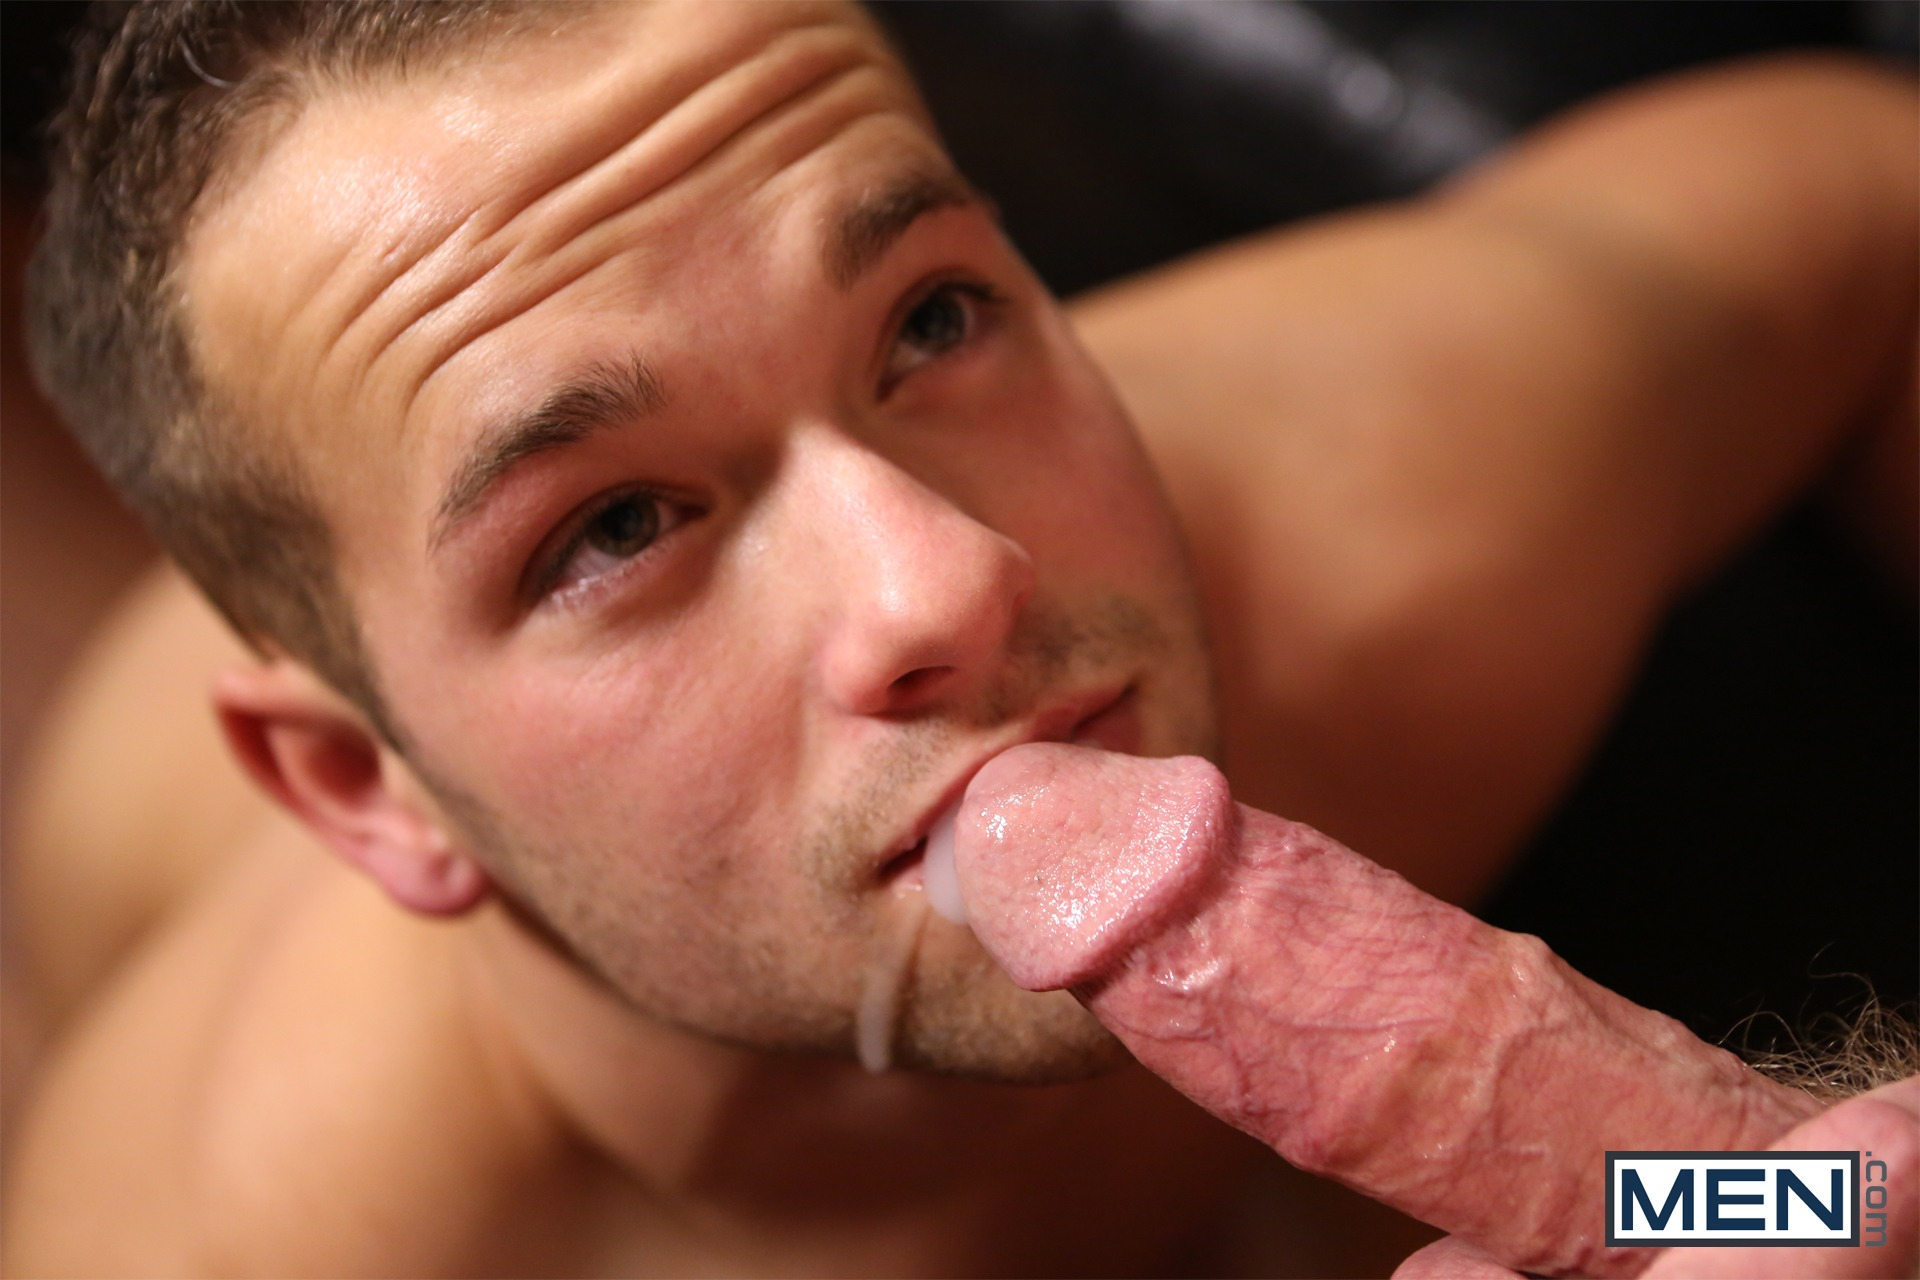 Eating cum from pulsing cock gay damien 9